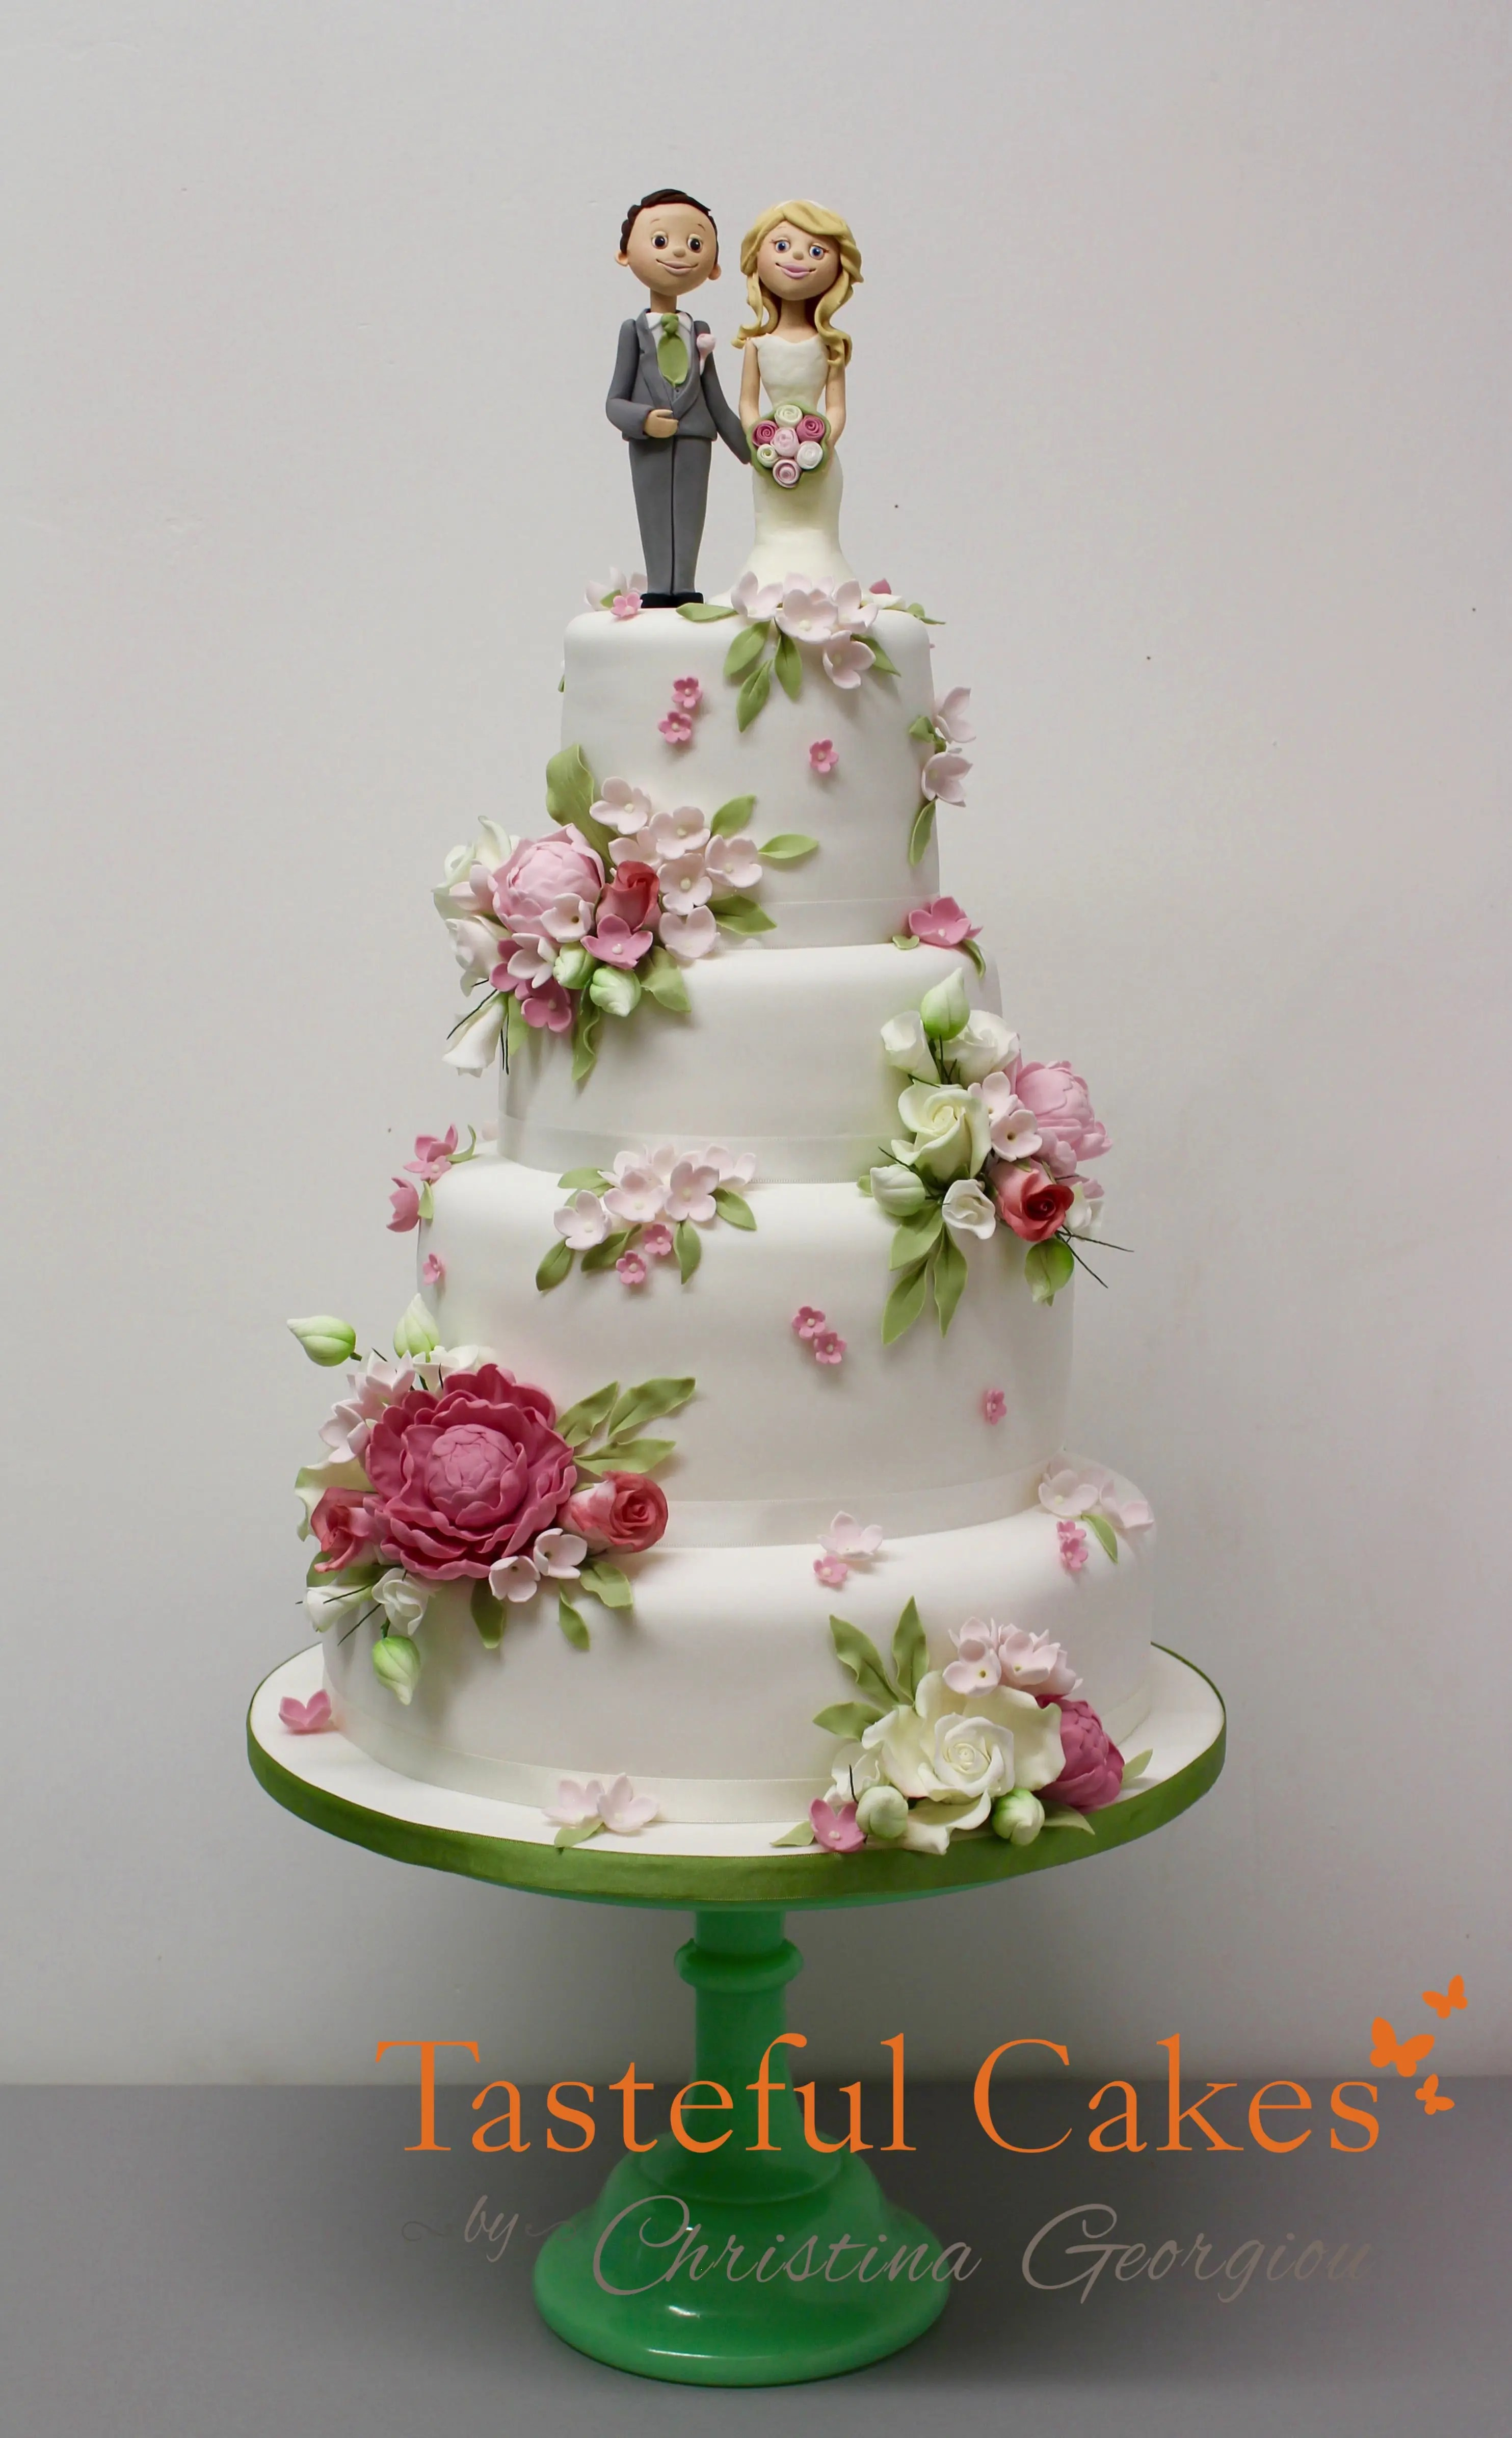 Tasteful Cakes By Christina Georgiou A Pastel Scattered